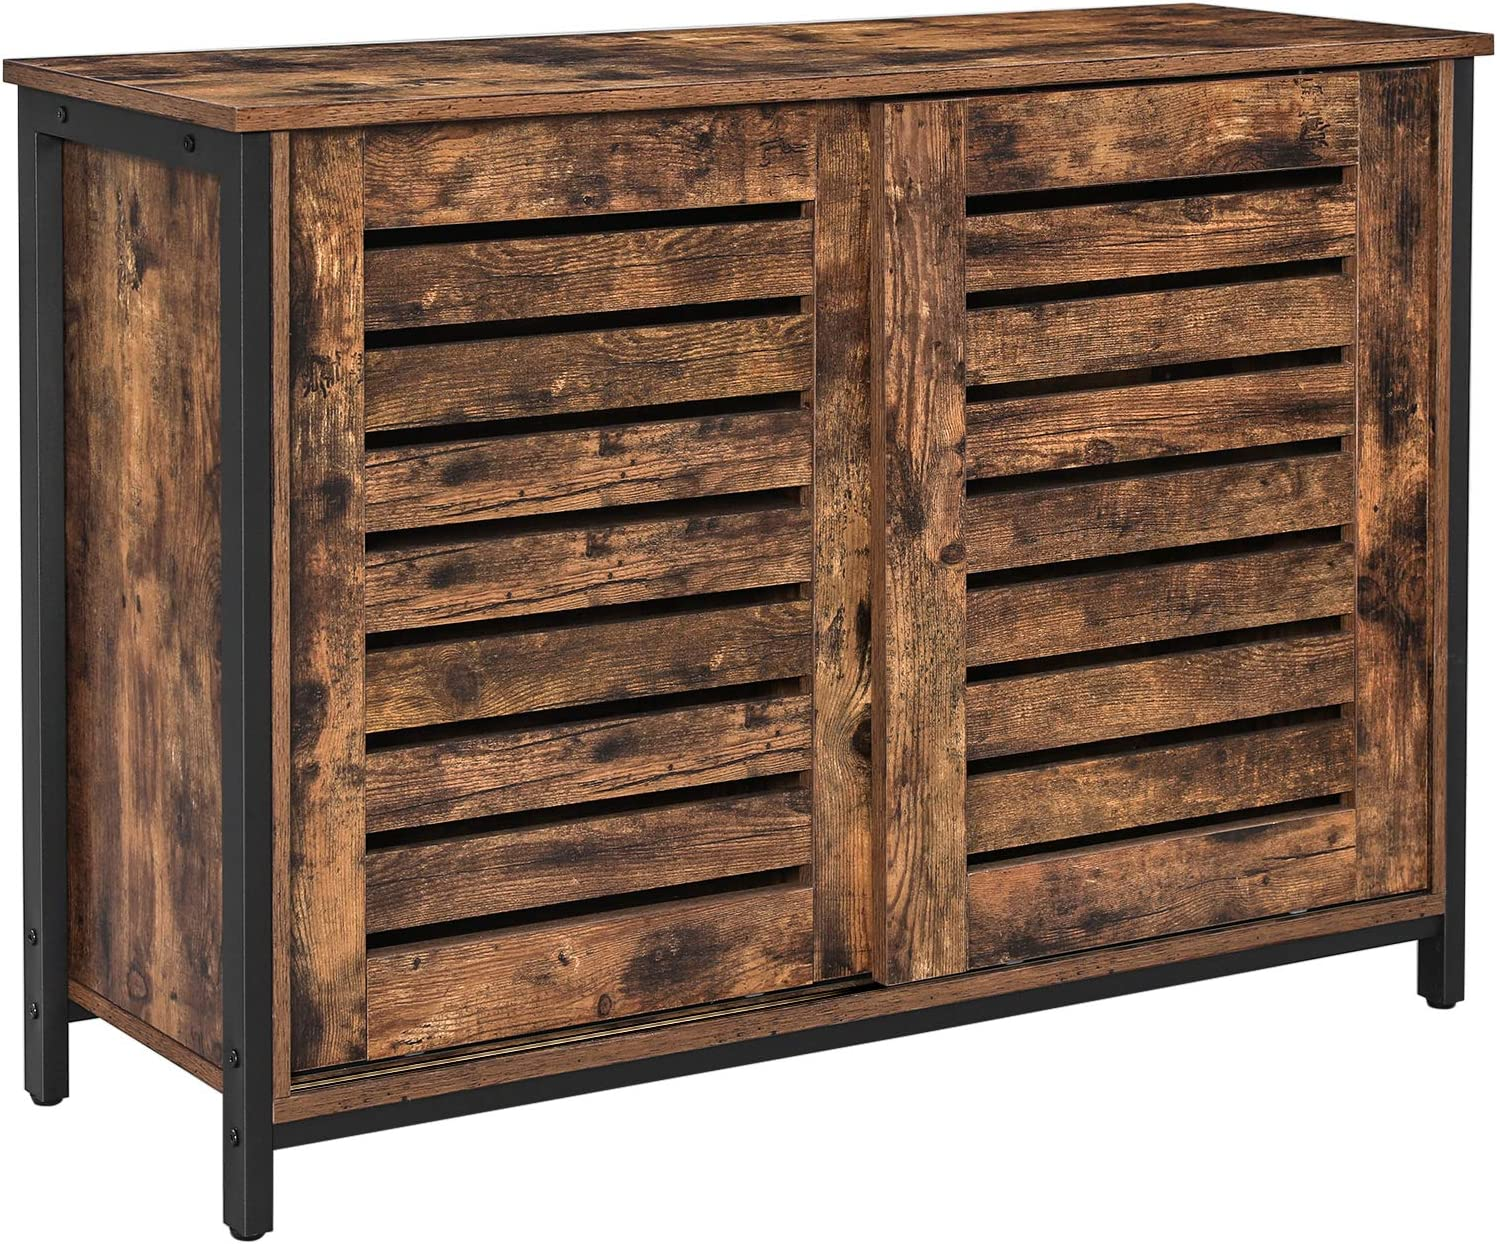 VASAGLE LOWELL Sideboard, Kitchen Cabinet with Shutter Sliding Doors, Floor Storage Cupboard, Living Room, Hallway, Steel Frame, Industrial, Rustic Brown and Black ULSC081B01